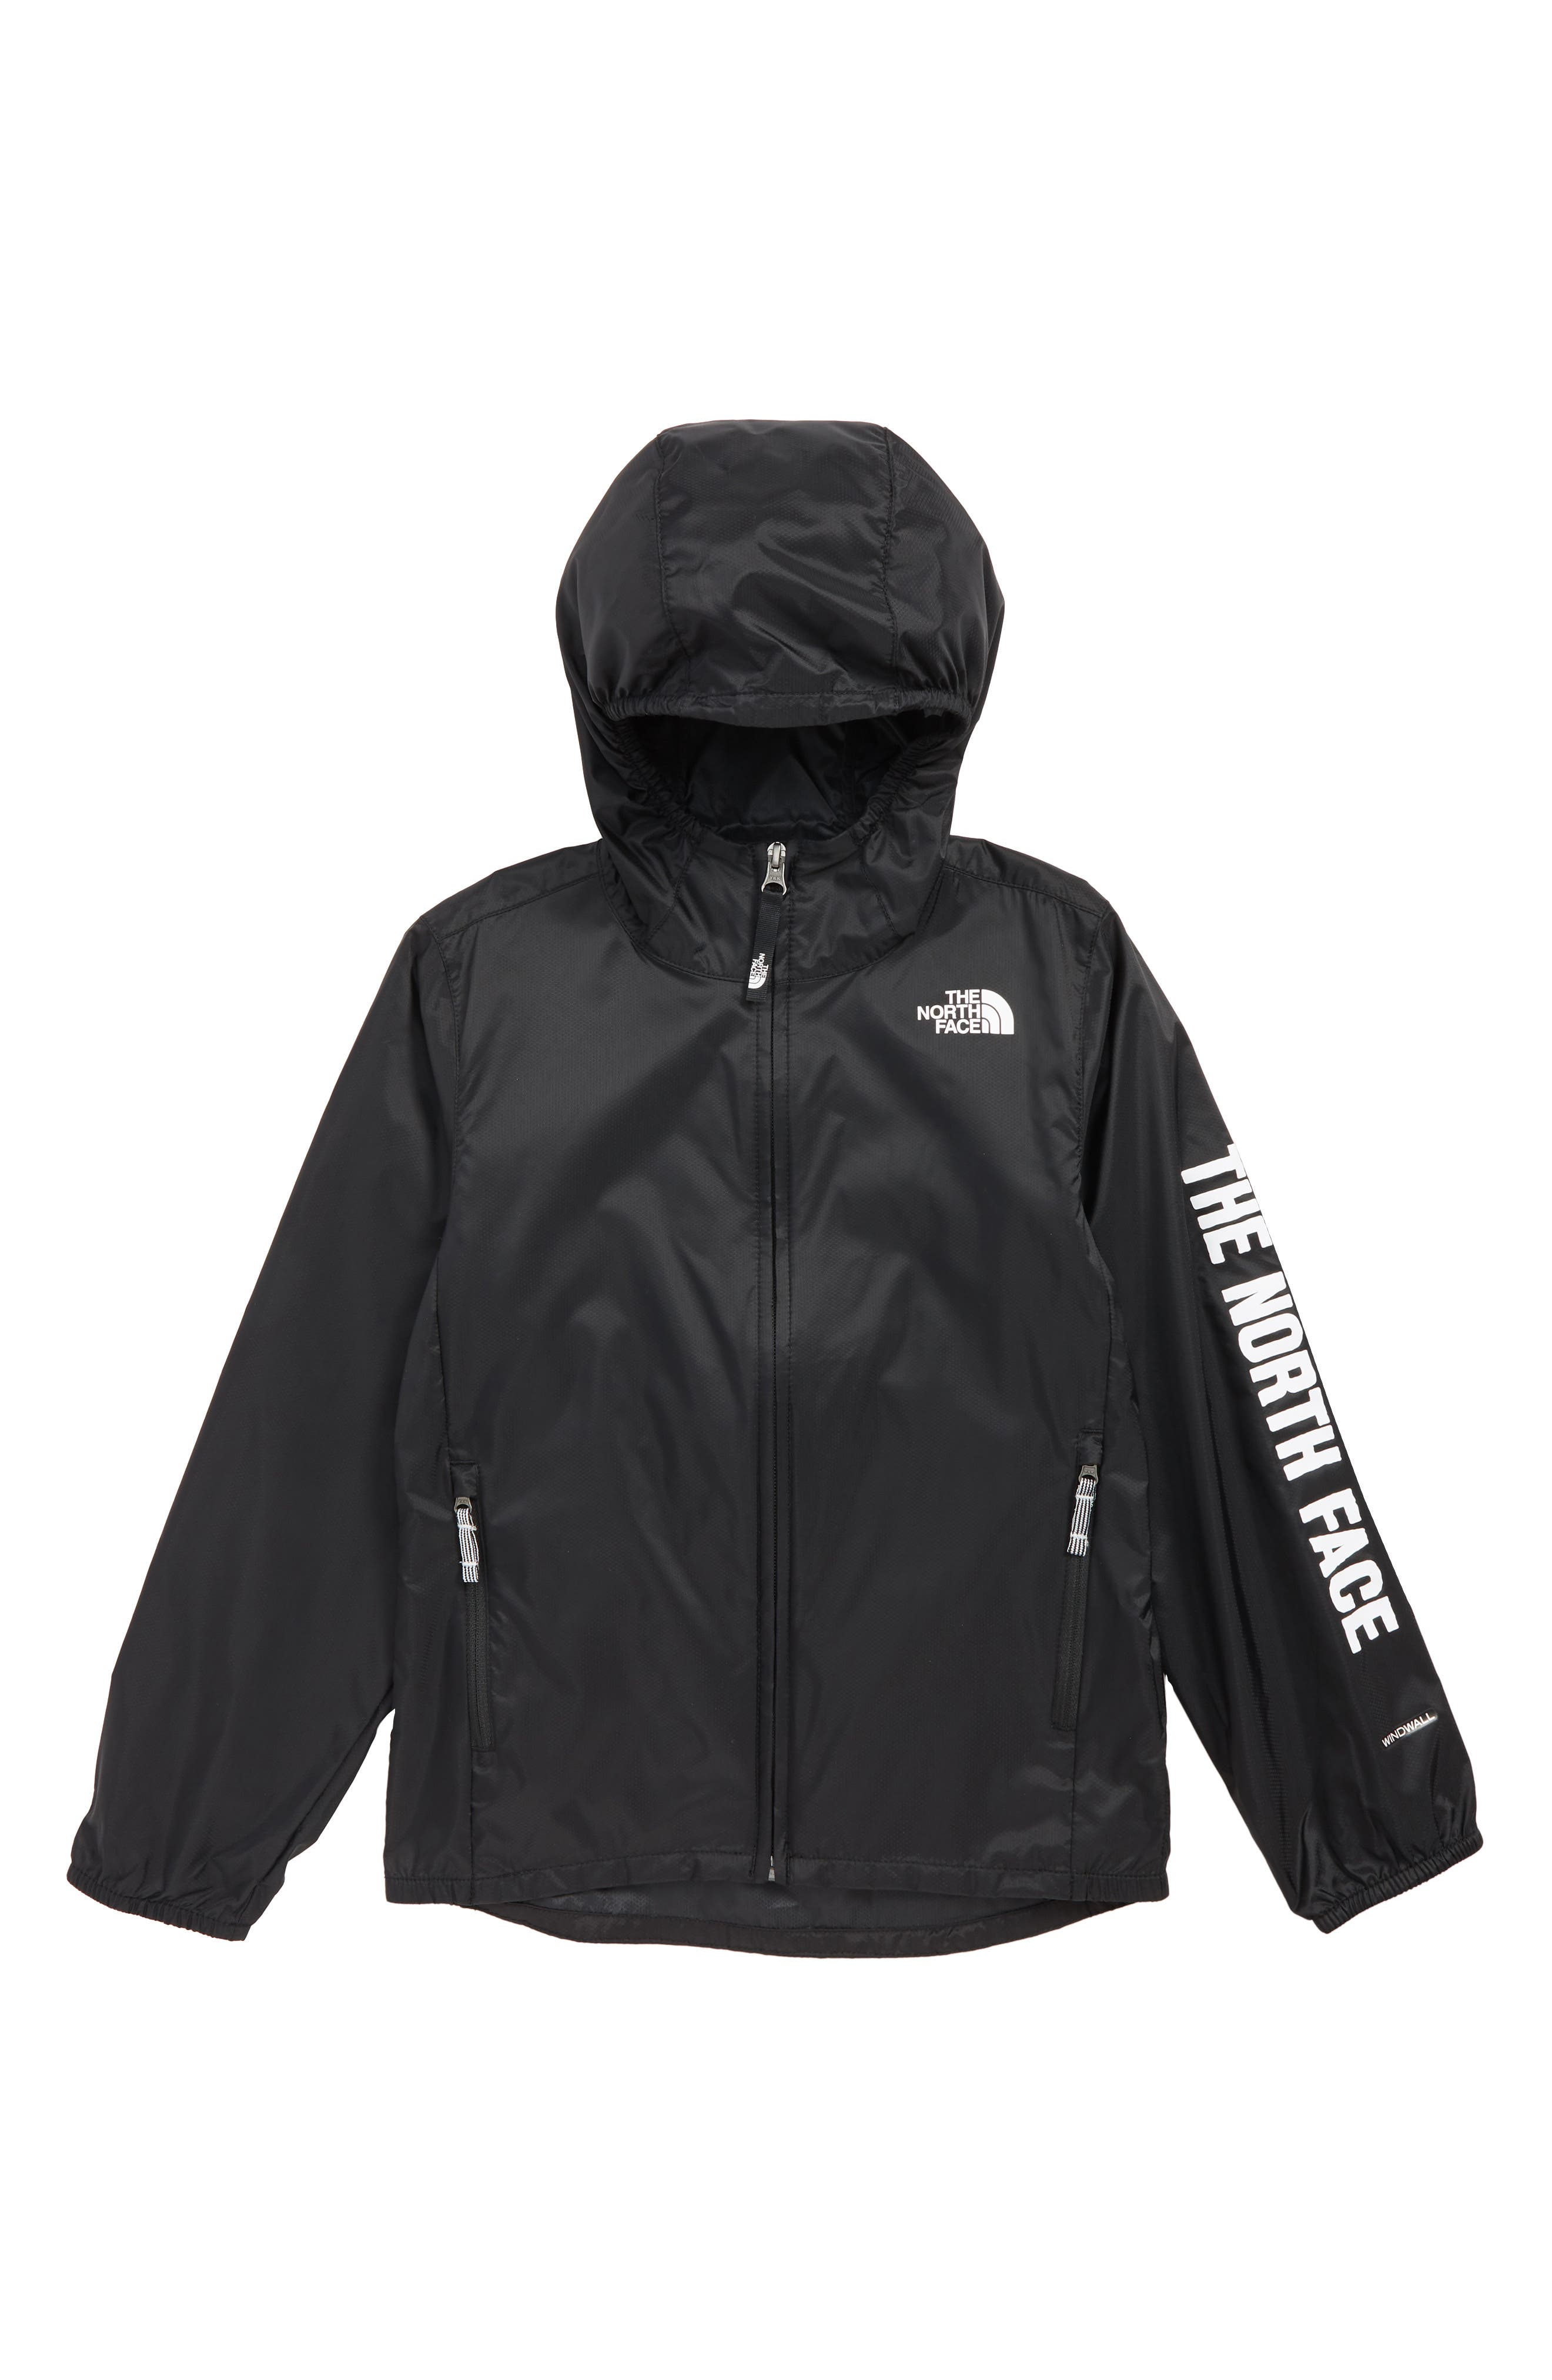 THE NORTH FACE, Flurry Water Repellent Hooded Windbreaker, Main thumbnail 1, color, TNF BLACK/ TNF BLACK